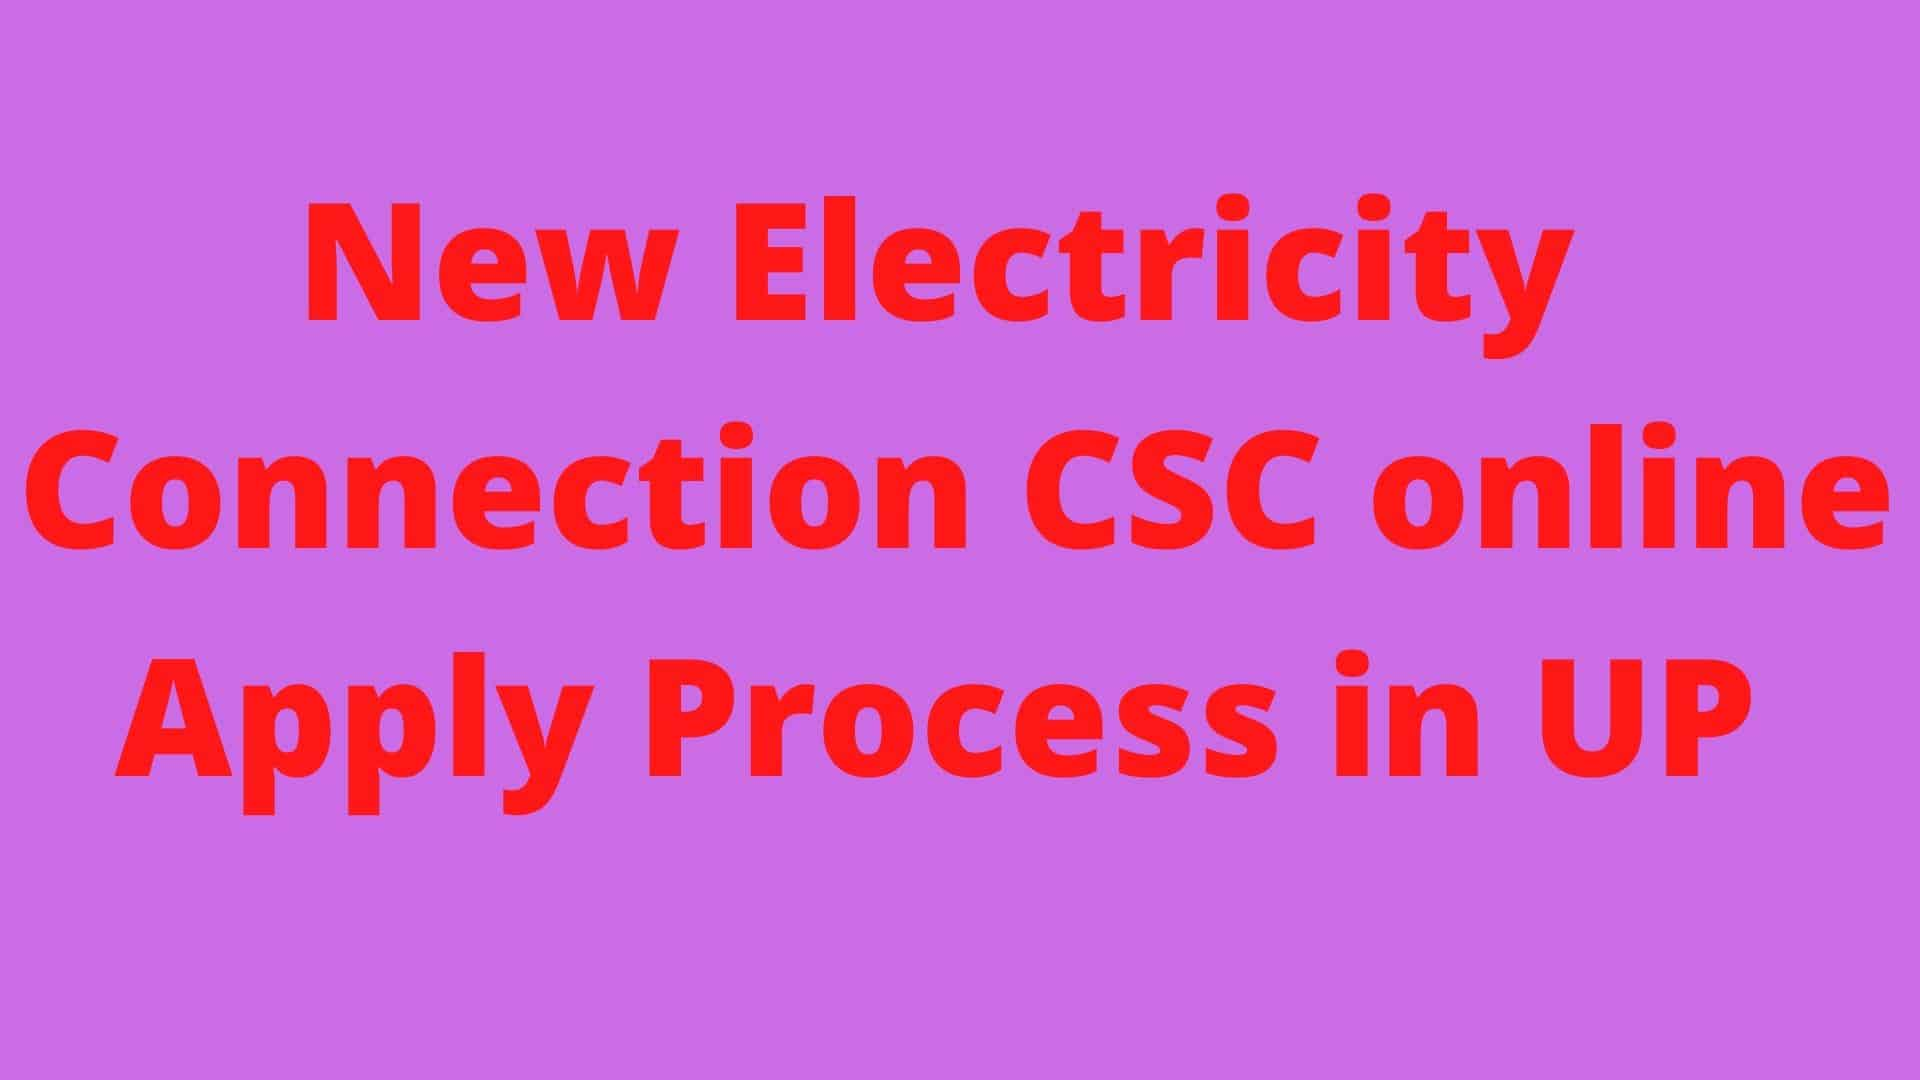 New Electricity Connection CSC online Apply Process in UP